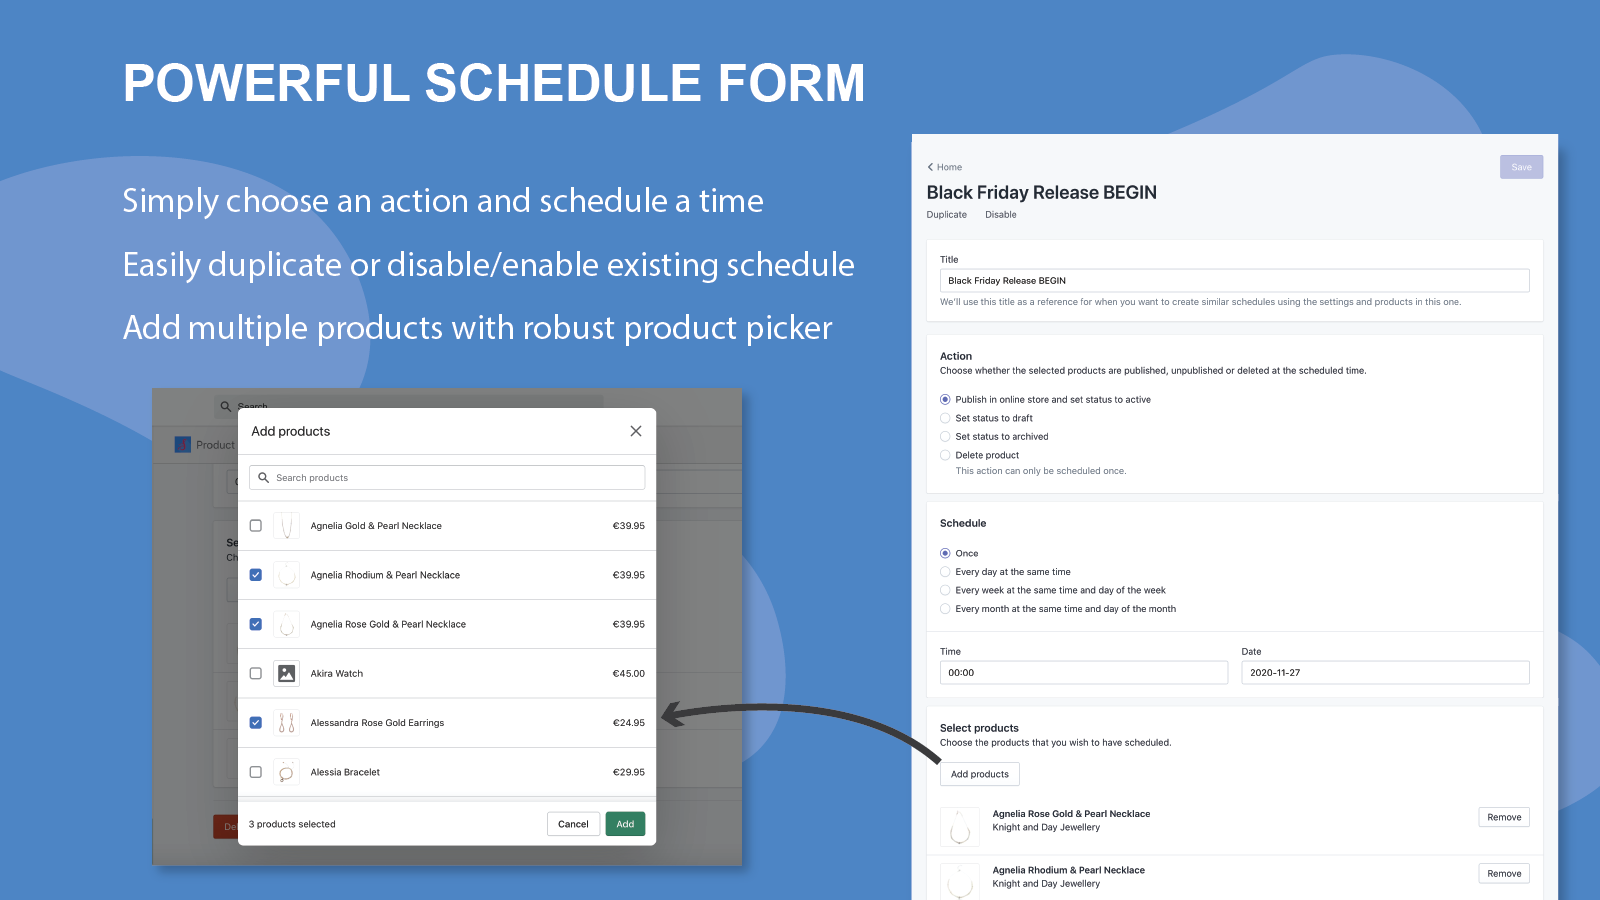 Form and product picker for creating a product schedule